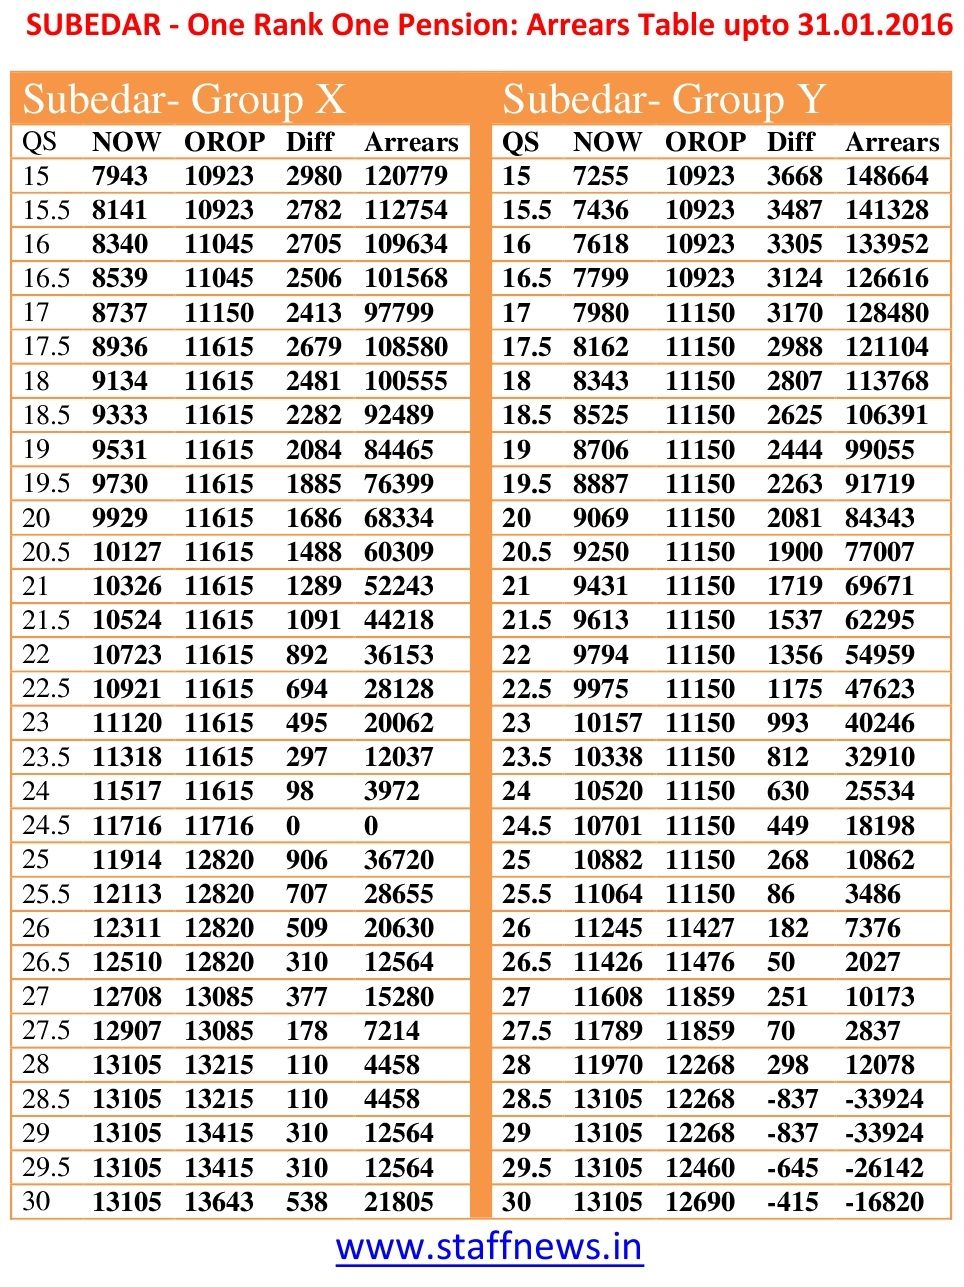 7th pay commission table army brokeasshome one rank pension arrear tables upto 31 01 2017 central gamestrikefo Image collections